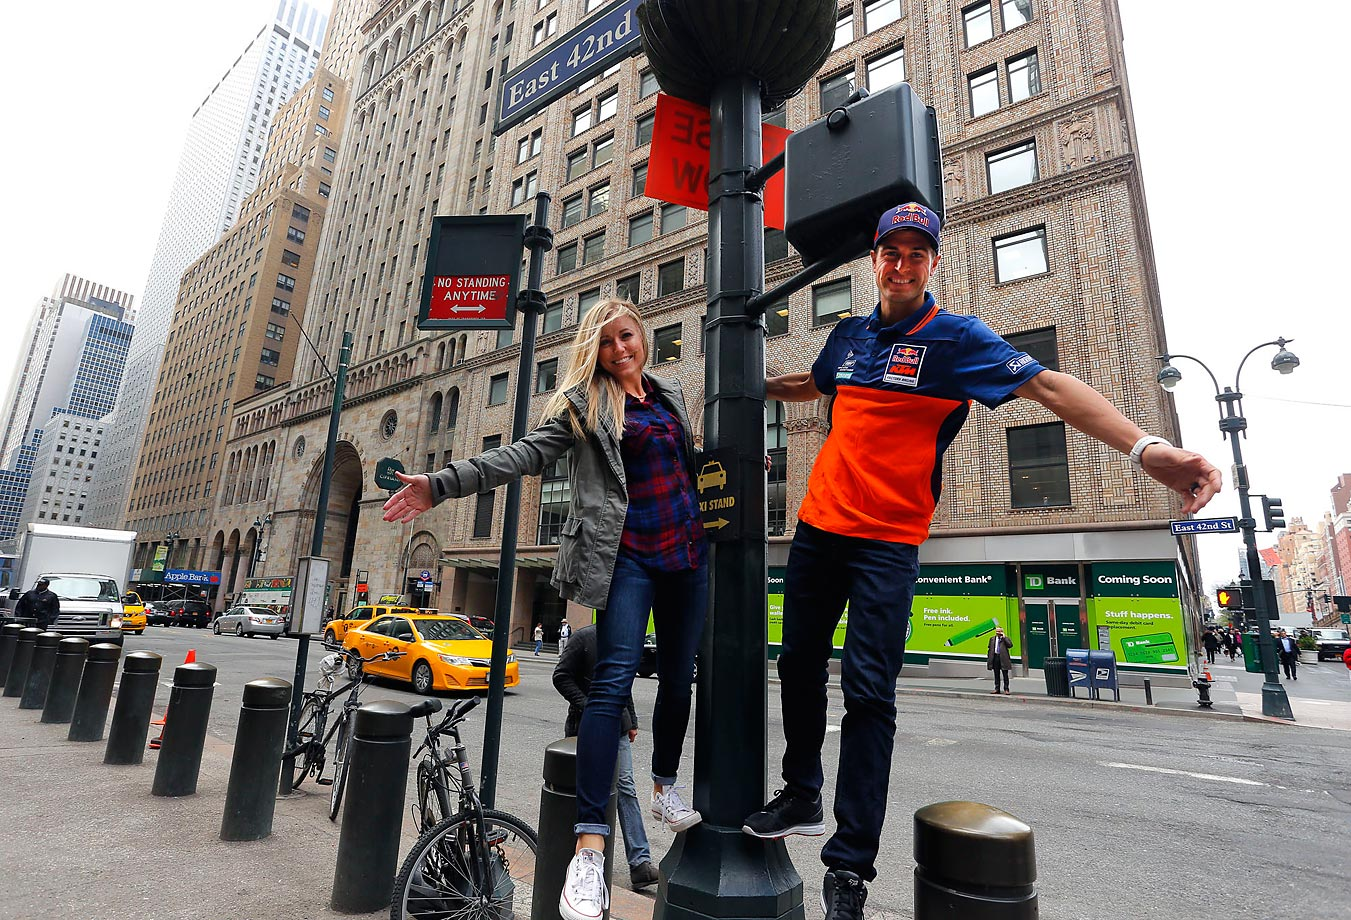 Ryan Dungey and his wife, Lindsay, have some fun in New York City while in town for a press conference before the Supercross event.